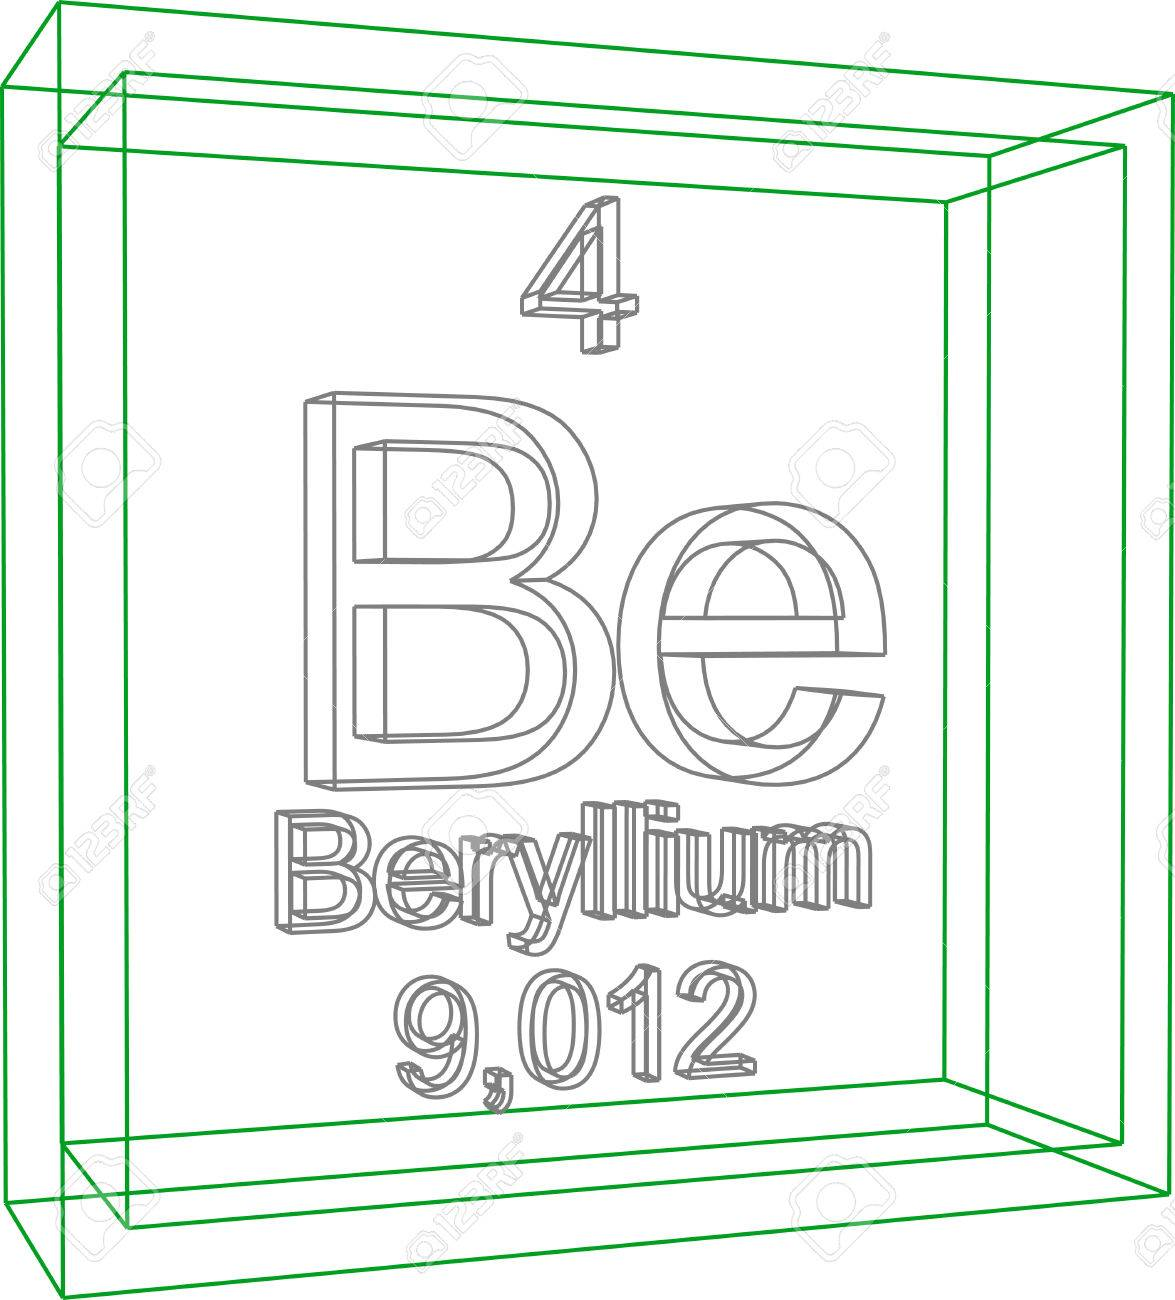 Periodic table of elements beryllium royalty free cliparts periodic table of elements beryllium stock vector 57970323 urtaz Choice Image